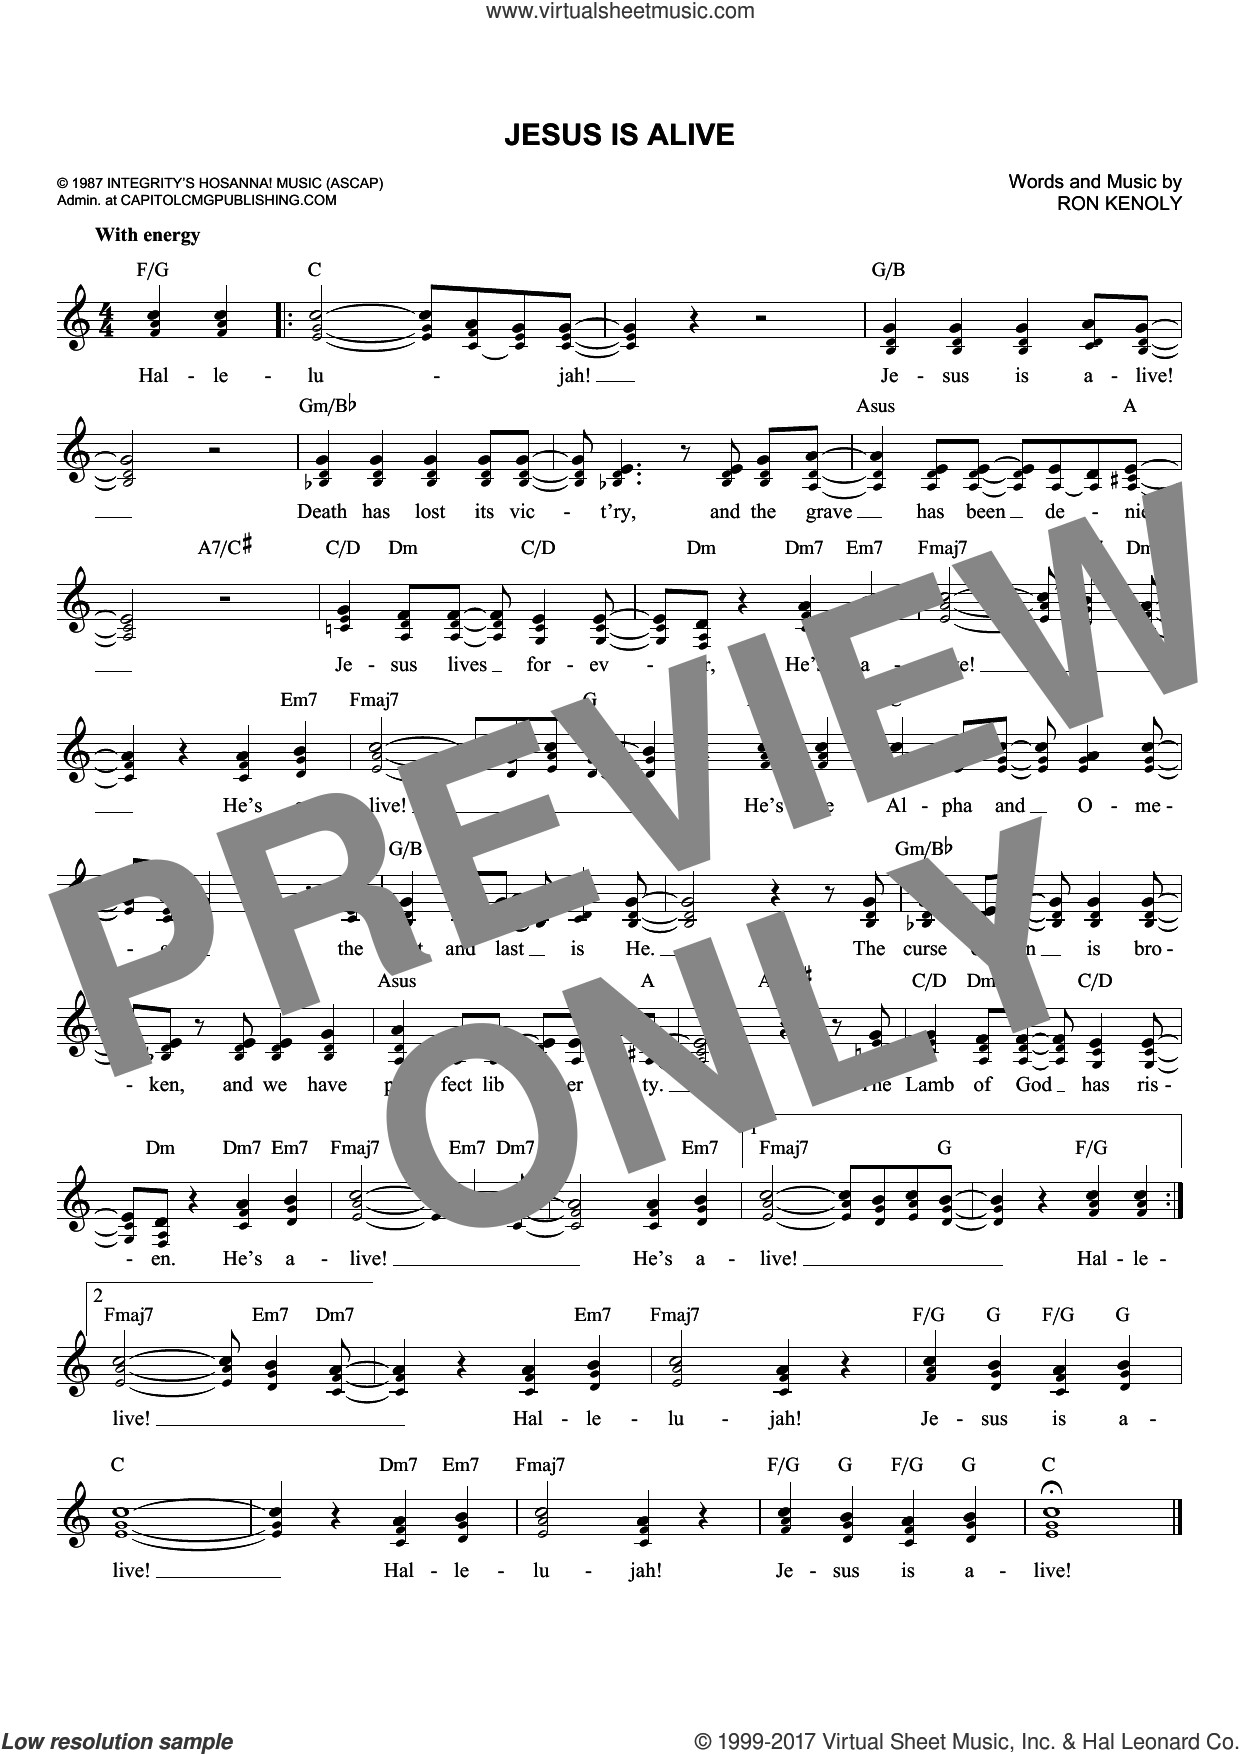 Jesus Is Alive sheet music for voice and other instruments (fake book) by Ron Kenoly, intermediate skill level